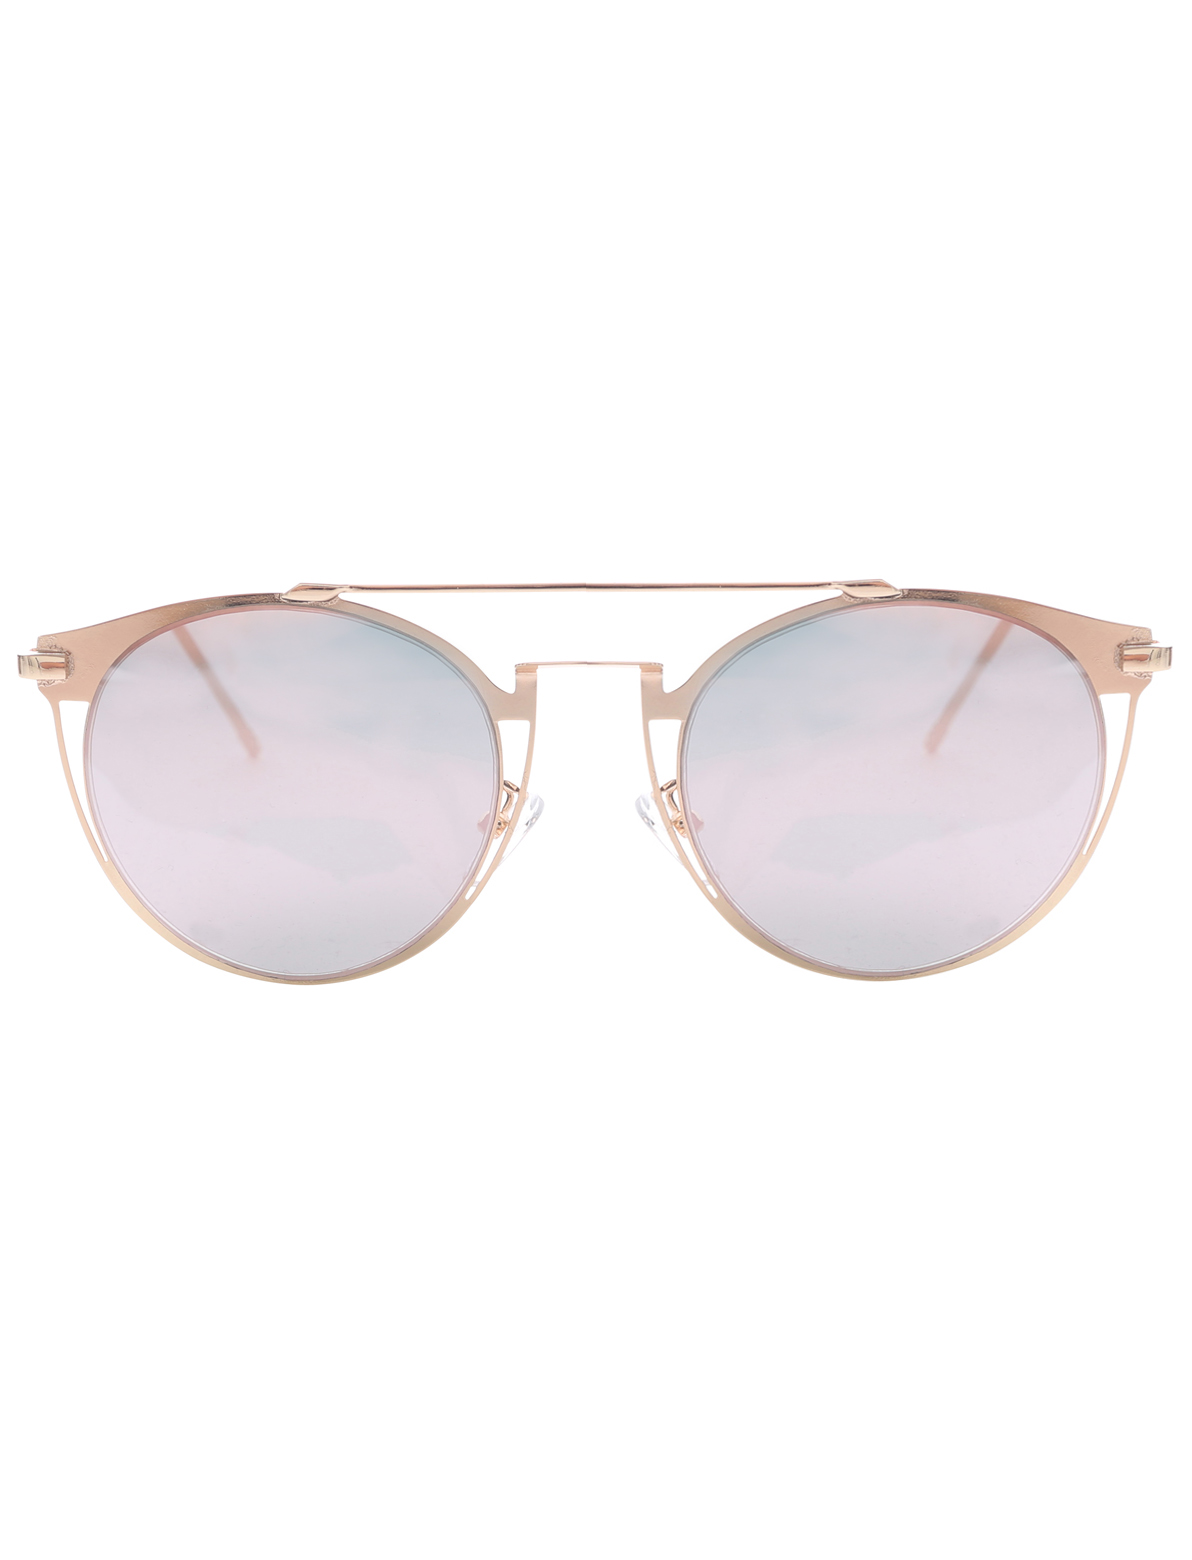 Image of All Eyes On You Mirrored Lens Sunglasses In Rose Gold